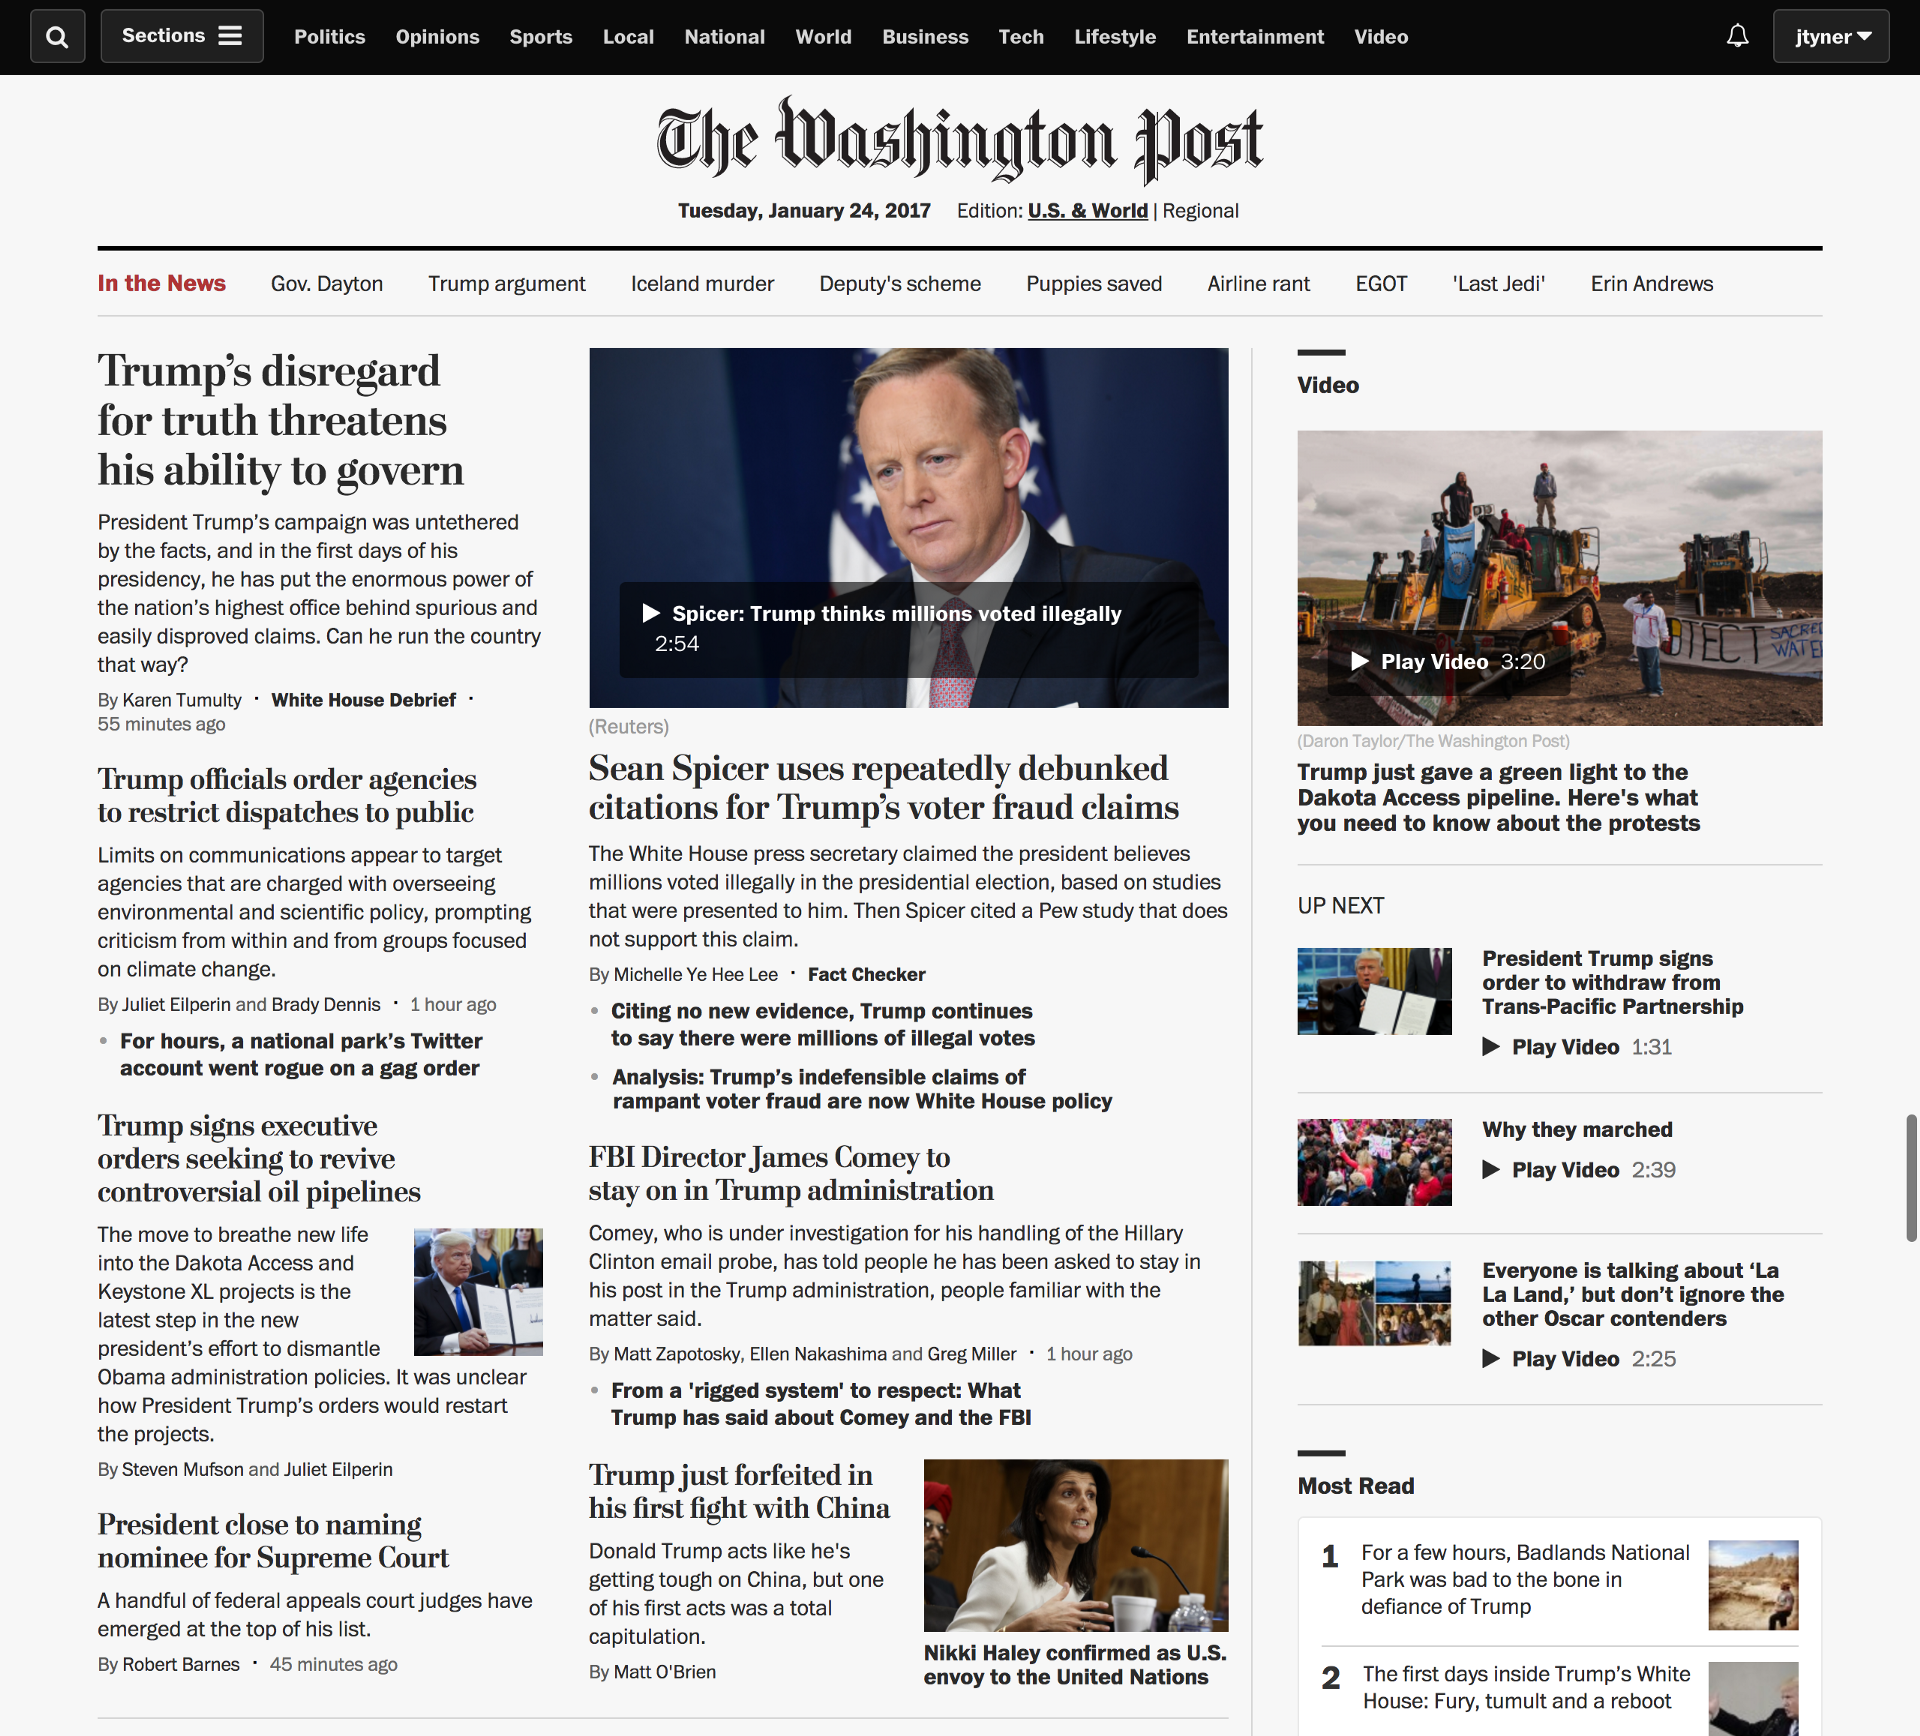 an analysis of the washington post by robert barnes Patent 'trolls'given hope at supreme court by robert barnes the washington post but kennedy also seemed to agree with gorsuch's analysis that the patent was.